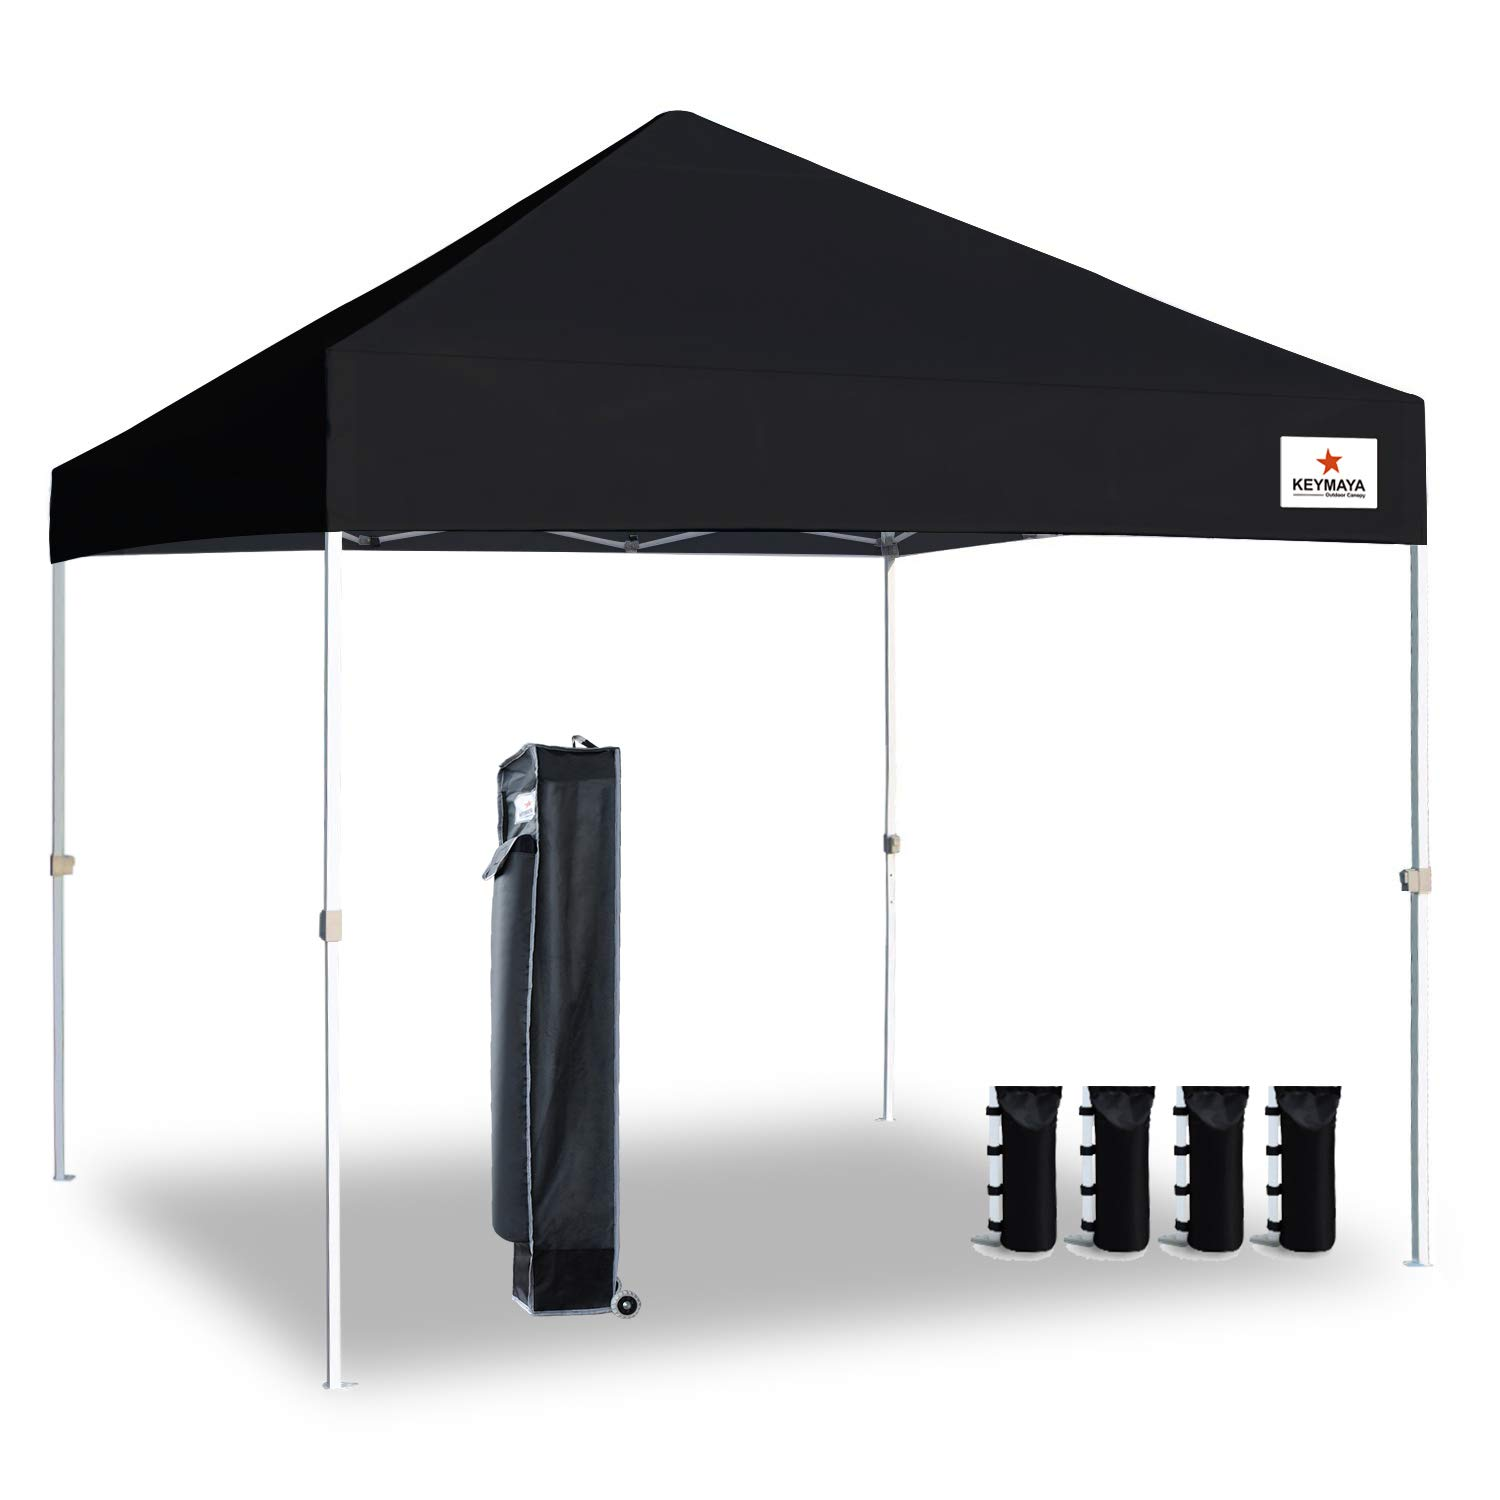 Keymaya 10'x10' Ez Commercial Instant Tent Heavy Duty Pop-up Canopy Shelter Bonus Weight Bag 4-pc Pack (Black)